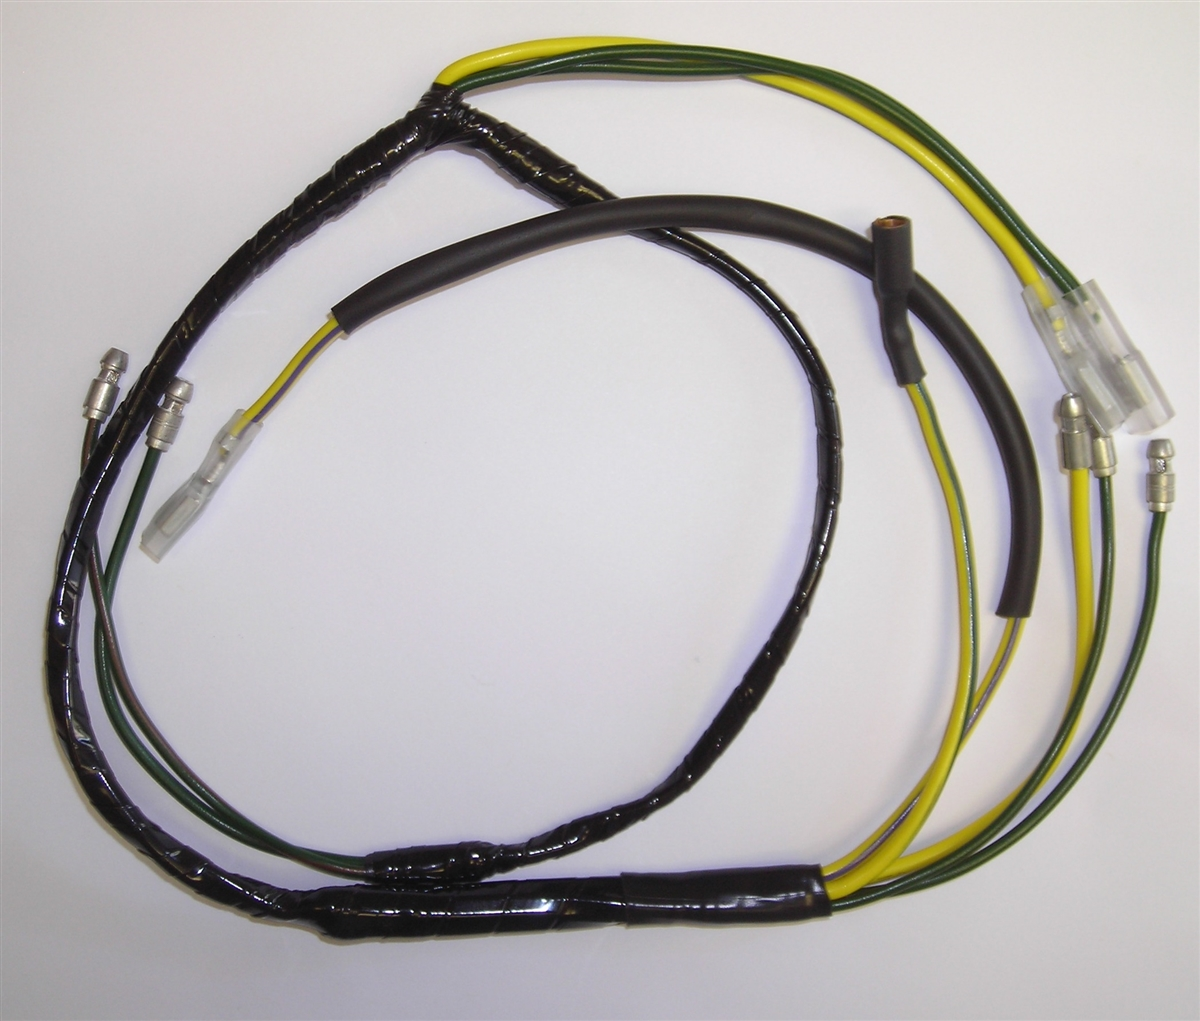 Triumph Spitfire J Type Overdrive Wiring Harness | 1980 Triumph Spitfire Wiring Diagram |  | British Wiring